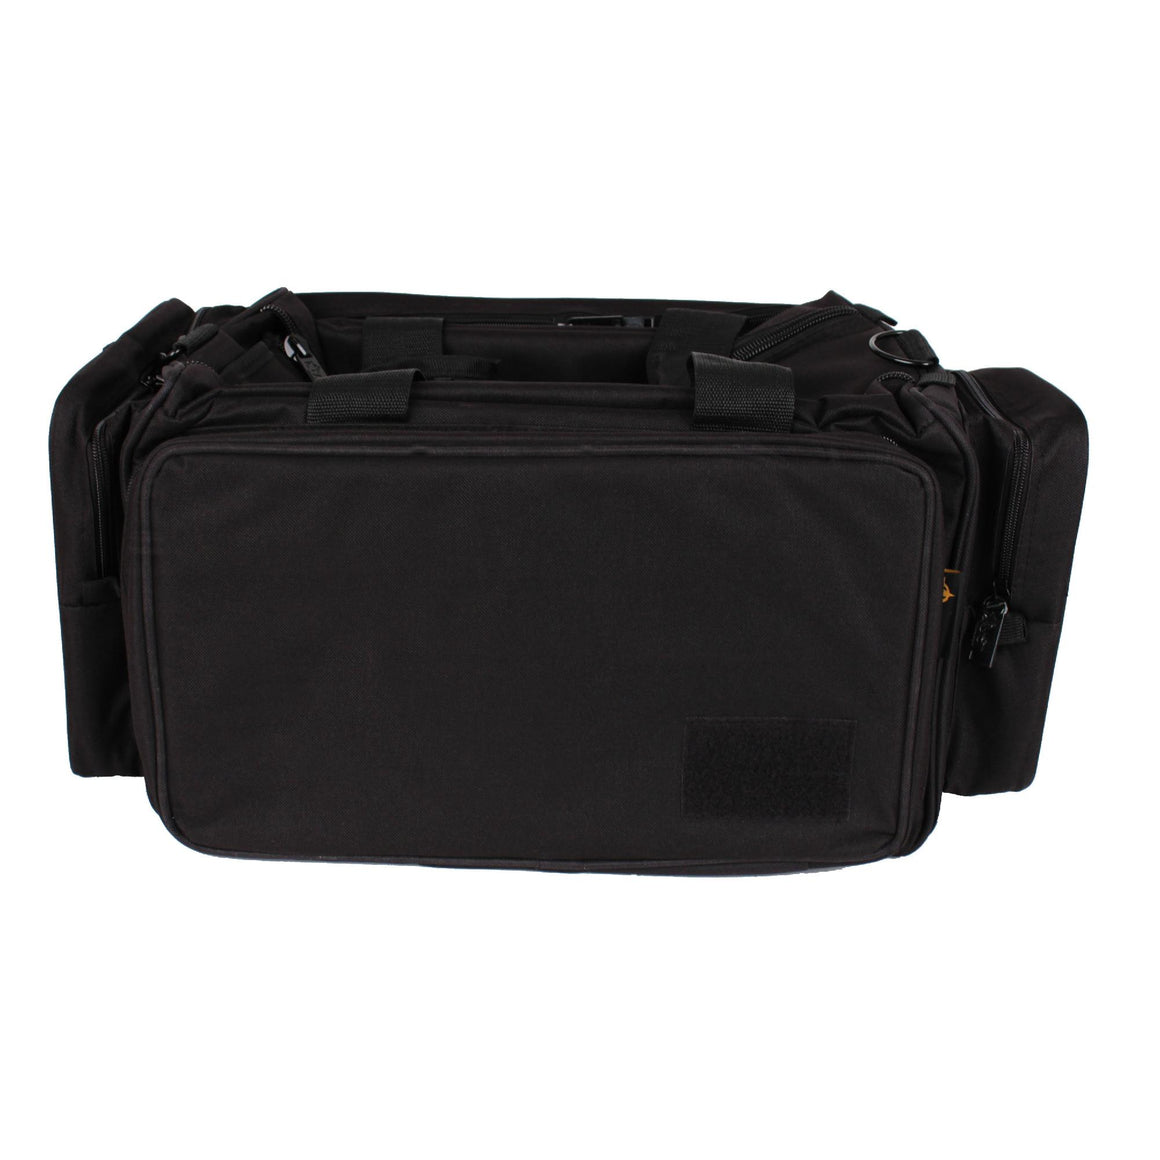 "Competitor Range Bag 24"" x 12"" x 11.5"" Black"